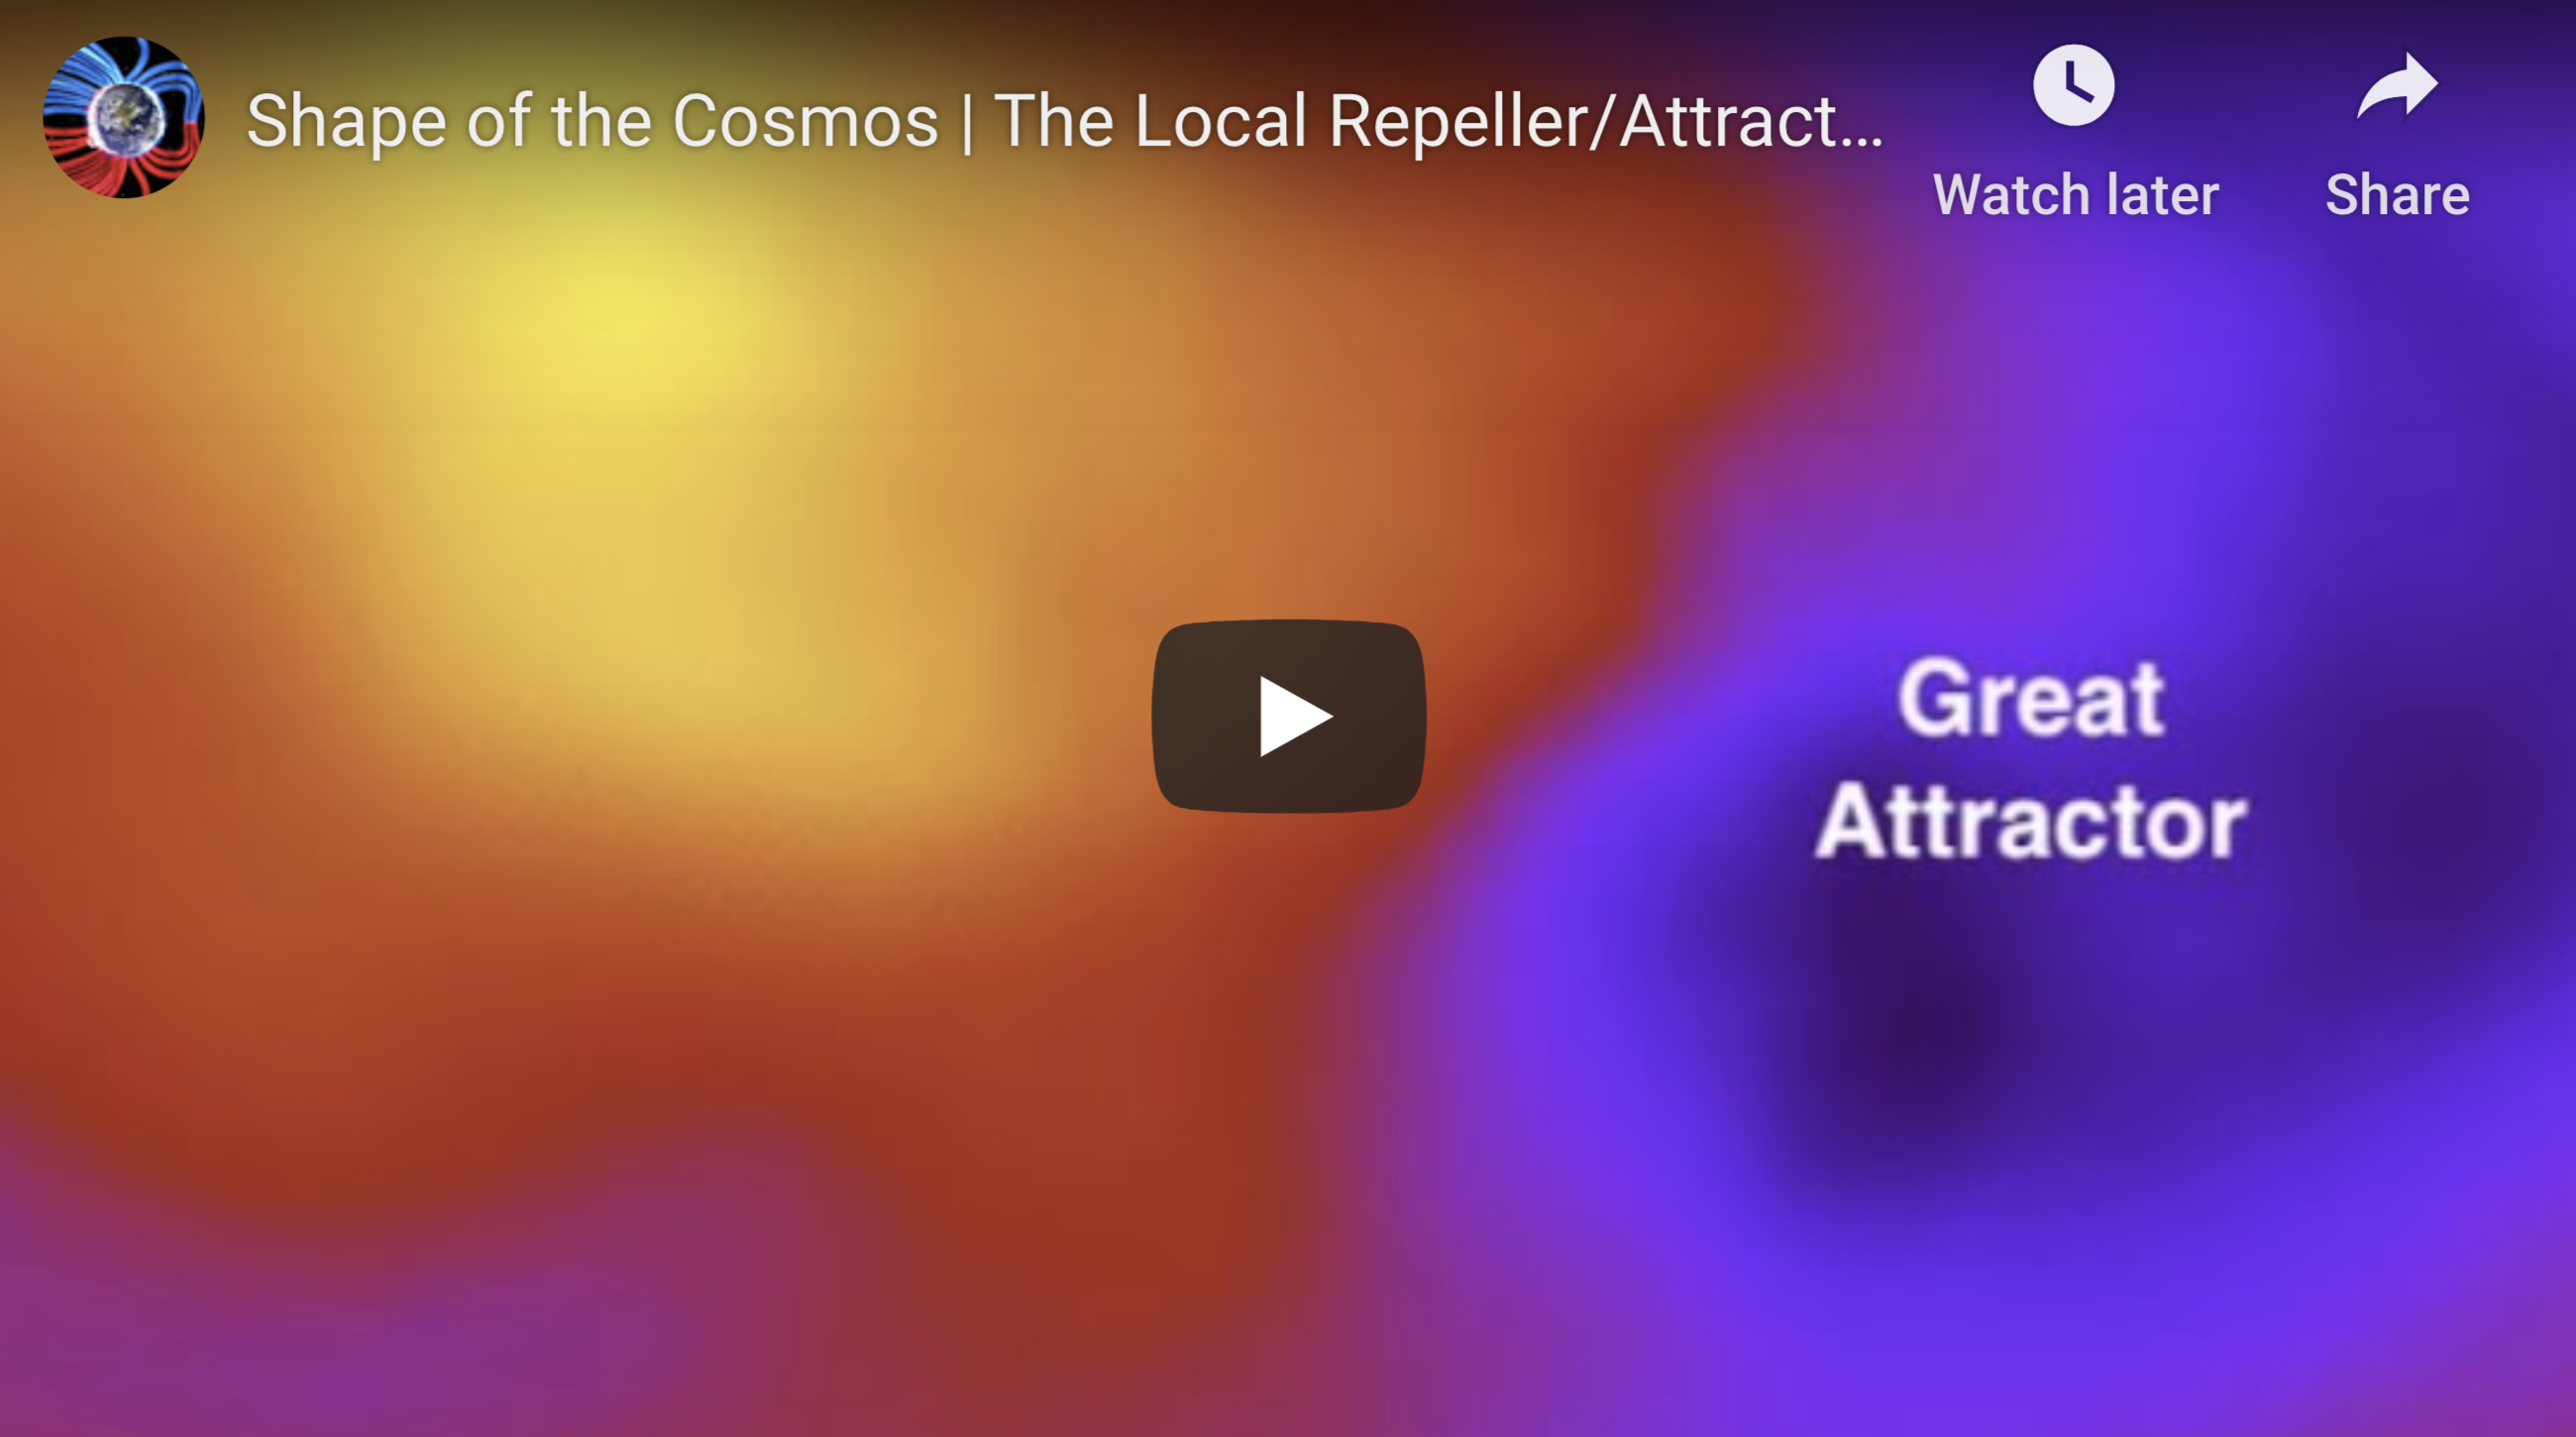 Shape of the Cosmos The Local Repeller Attractor 4 17 2020